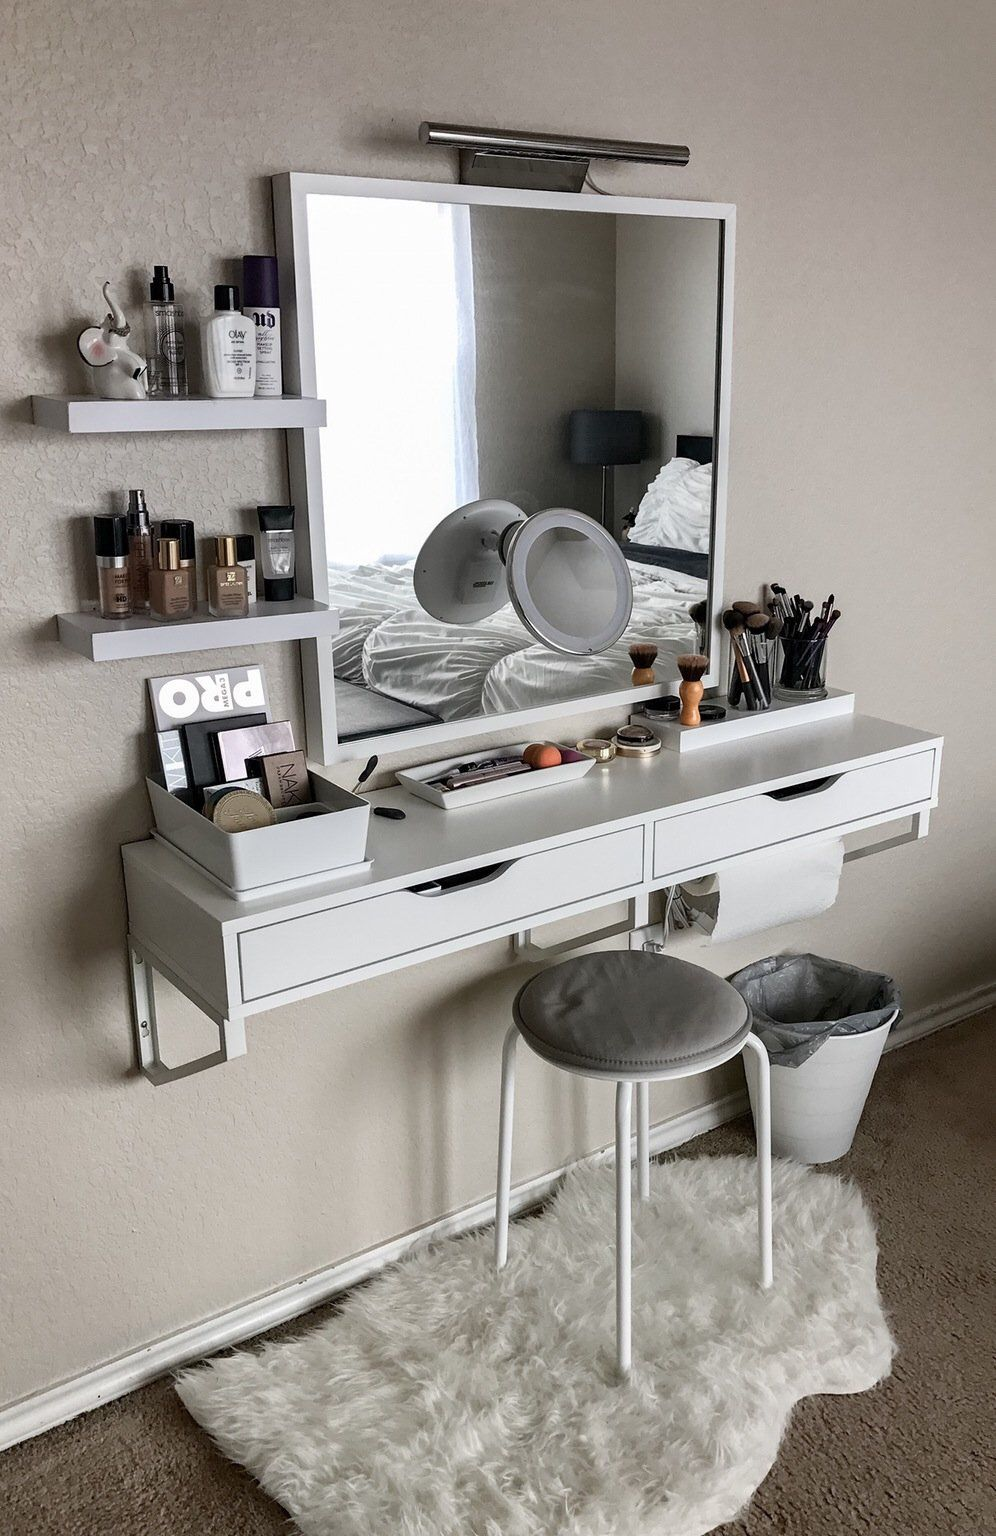 Image of: Makeup Vanity Table With Lighted Mirror Wall